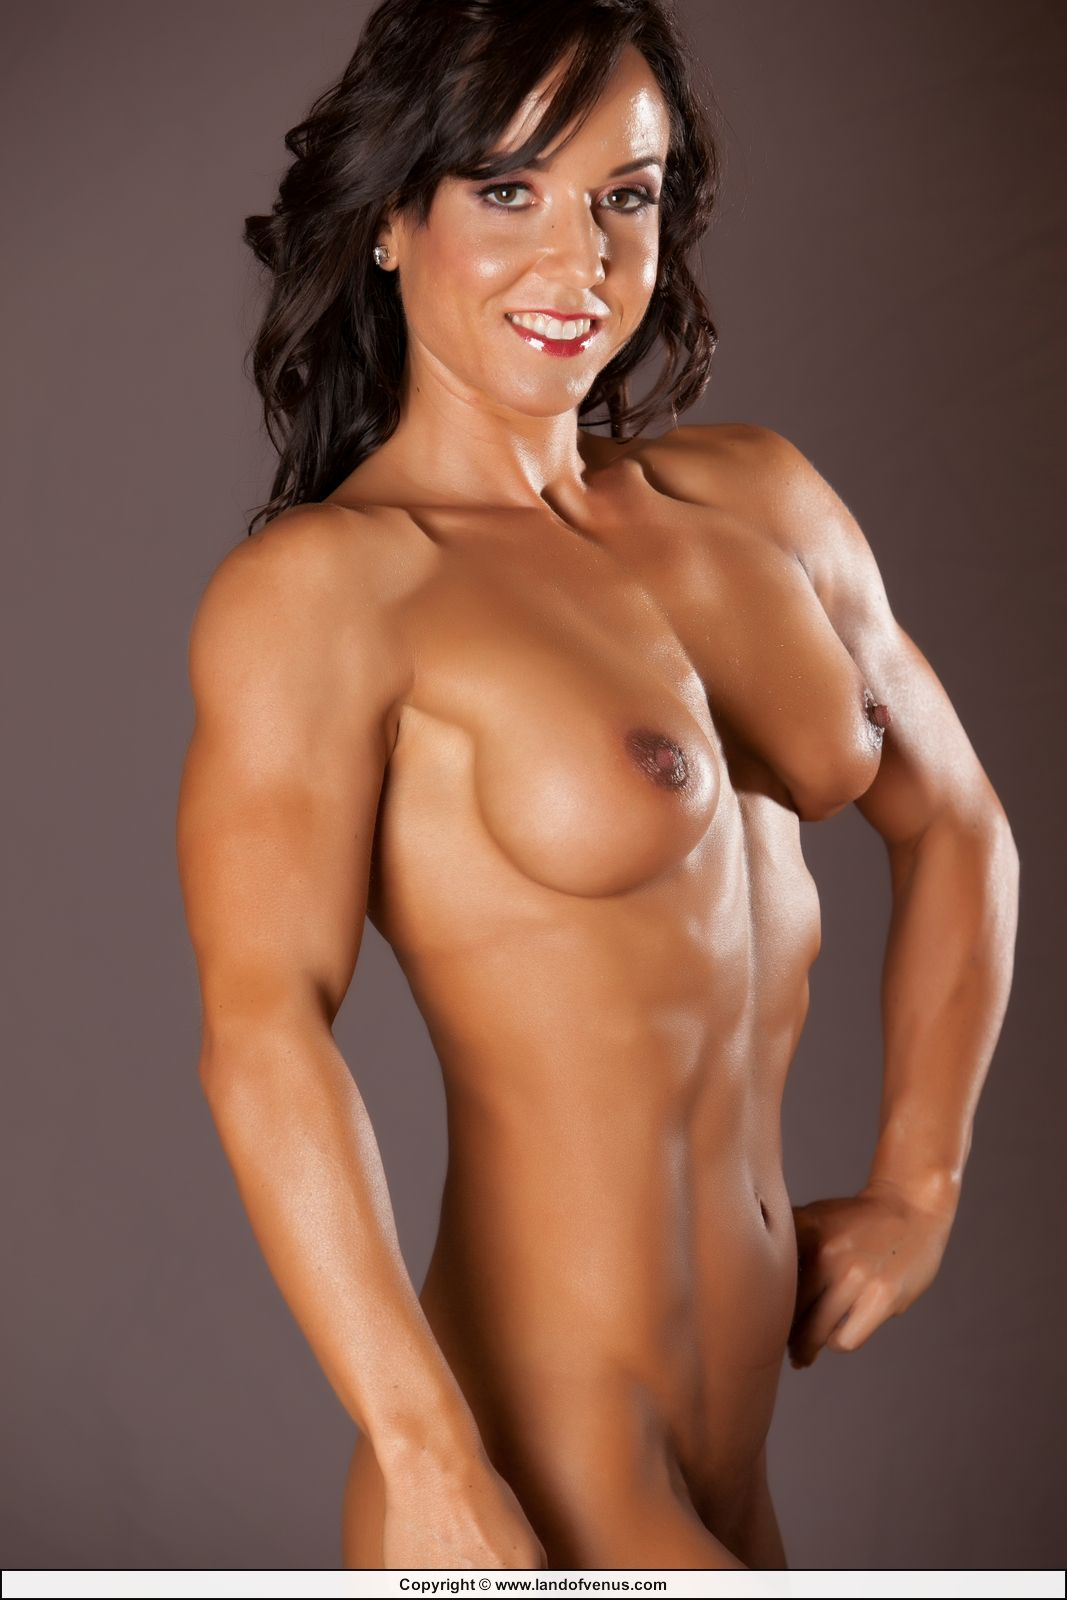 Girls With Muscles Naked